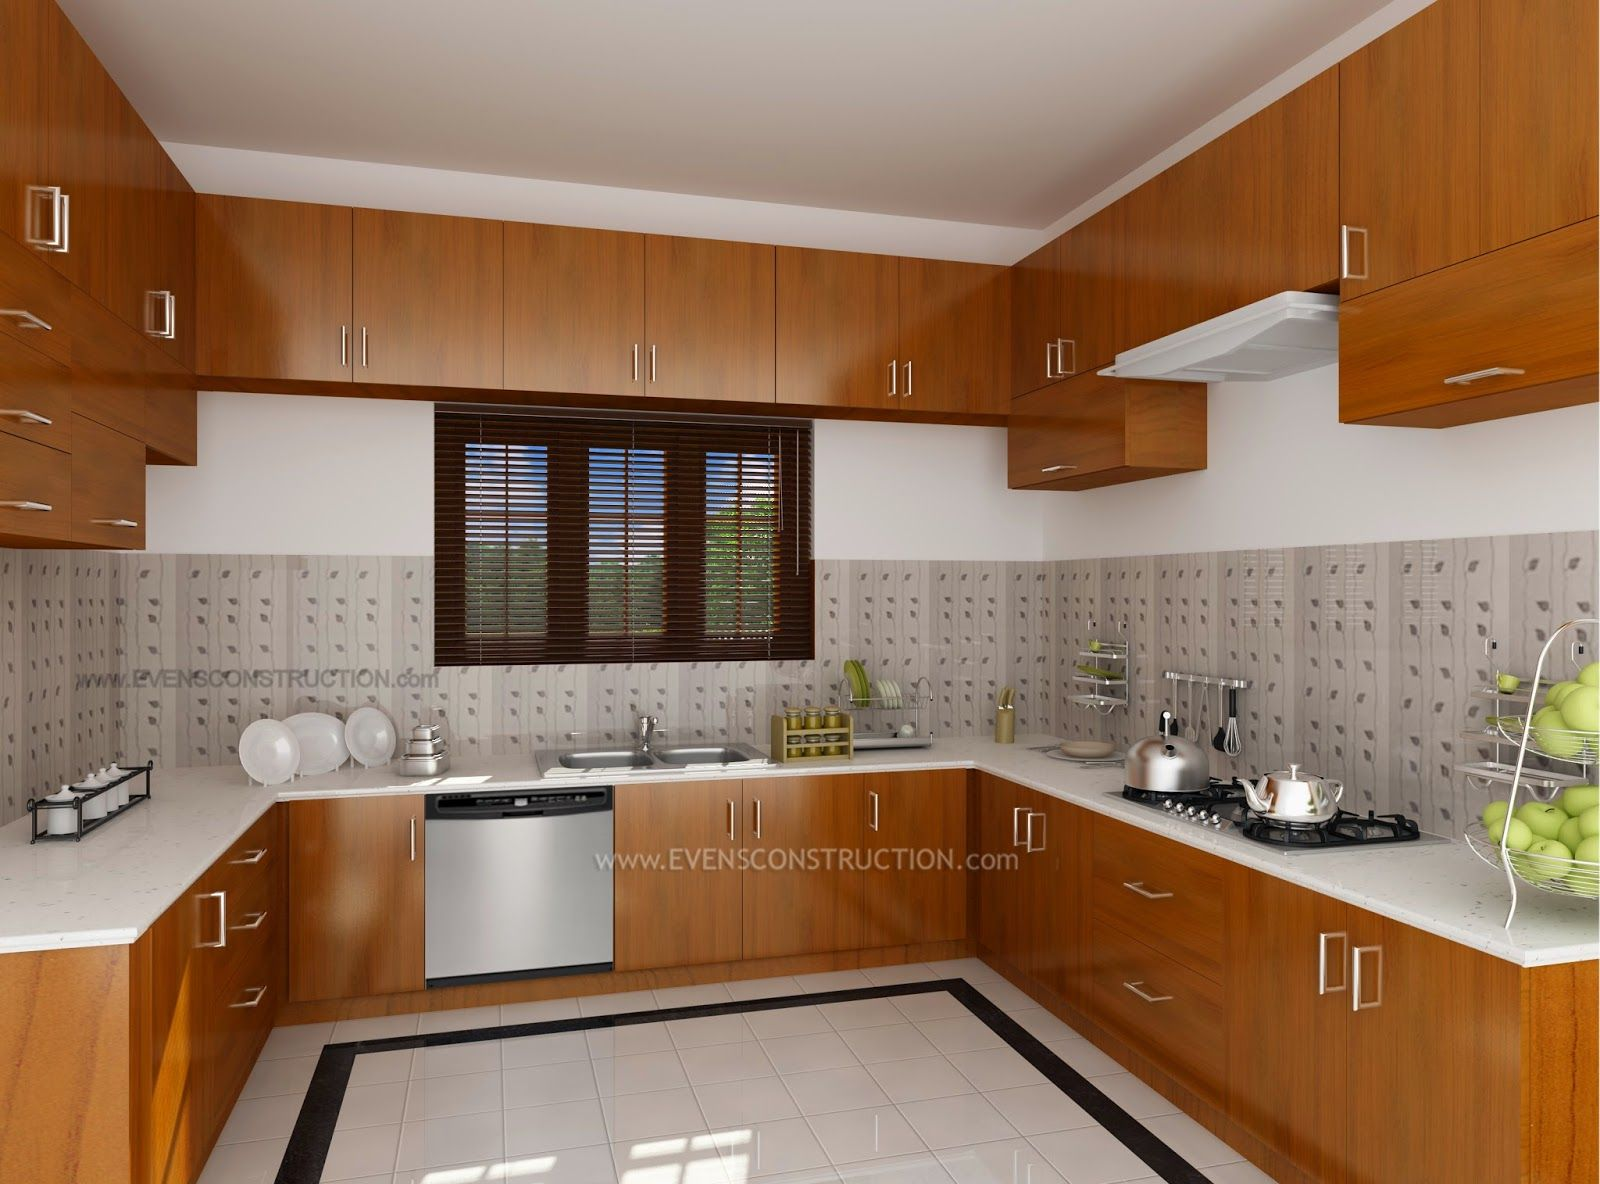 modular kitchen kerala home design amazing architecture on home interior design kitchen id=42361